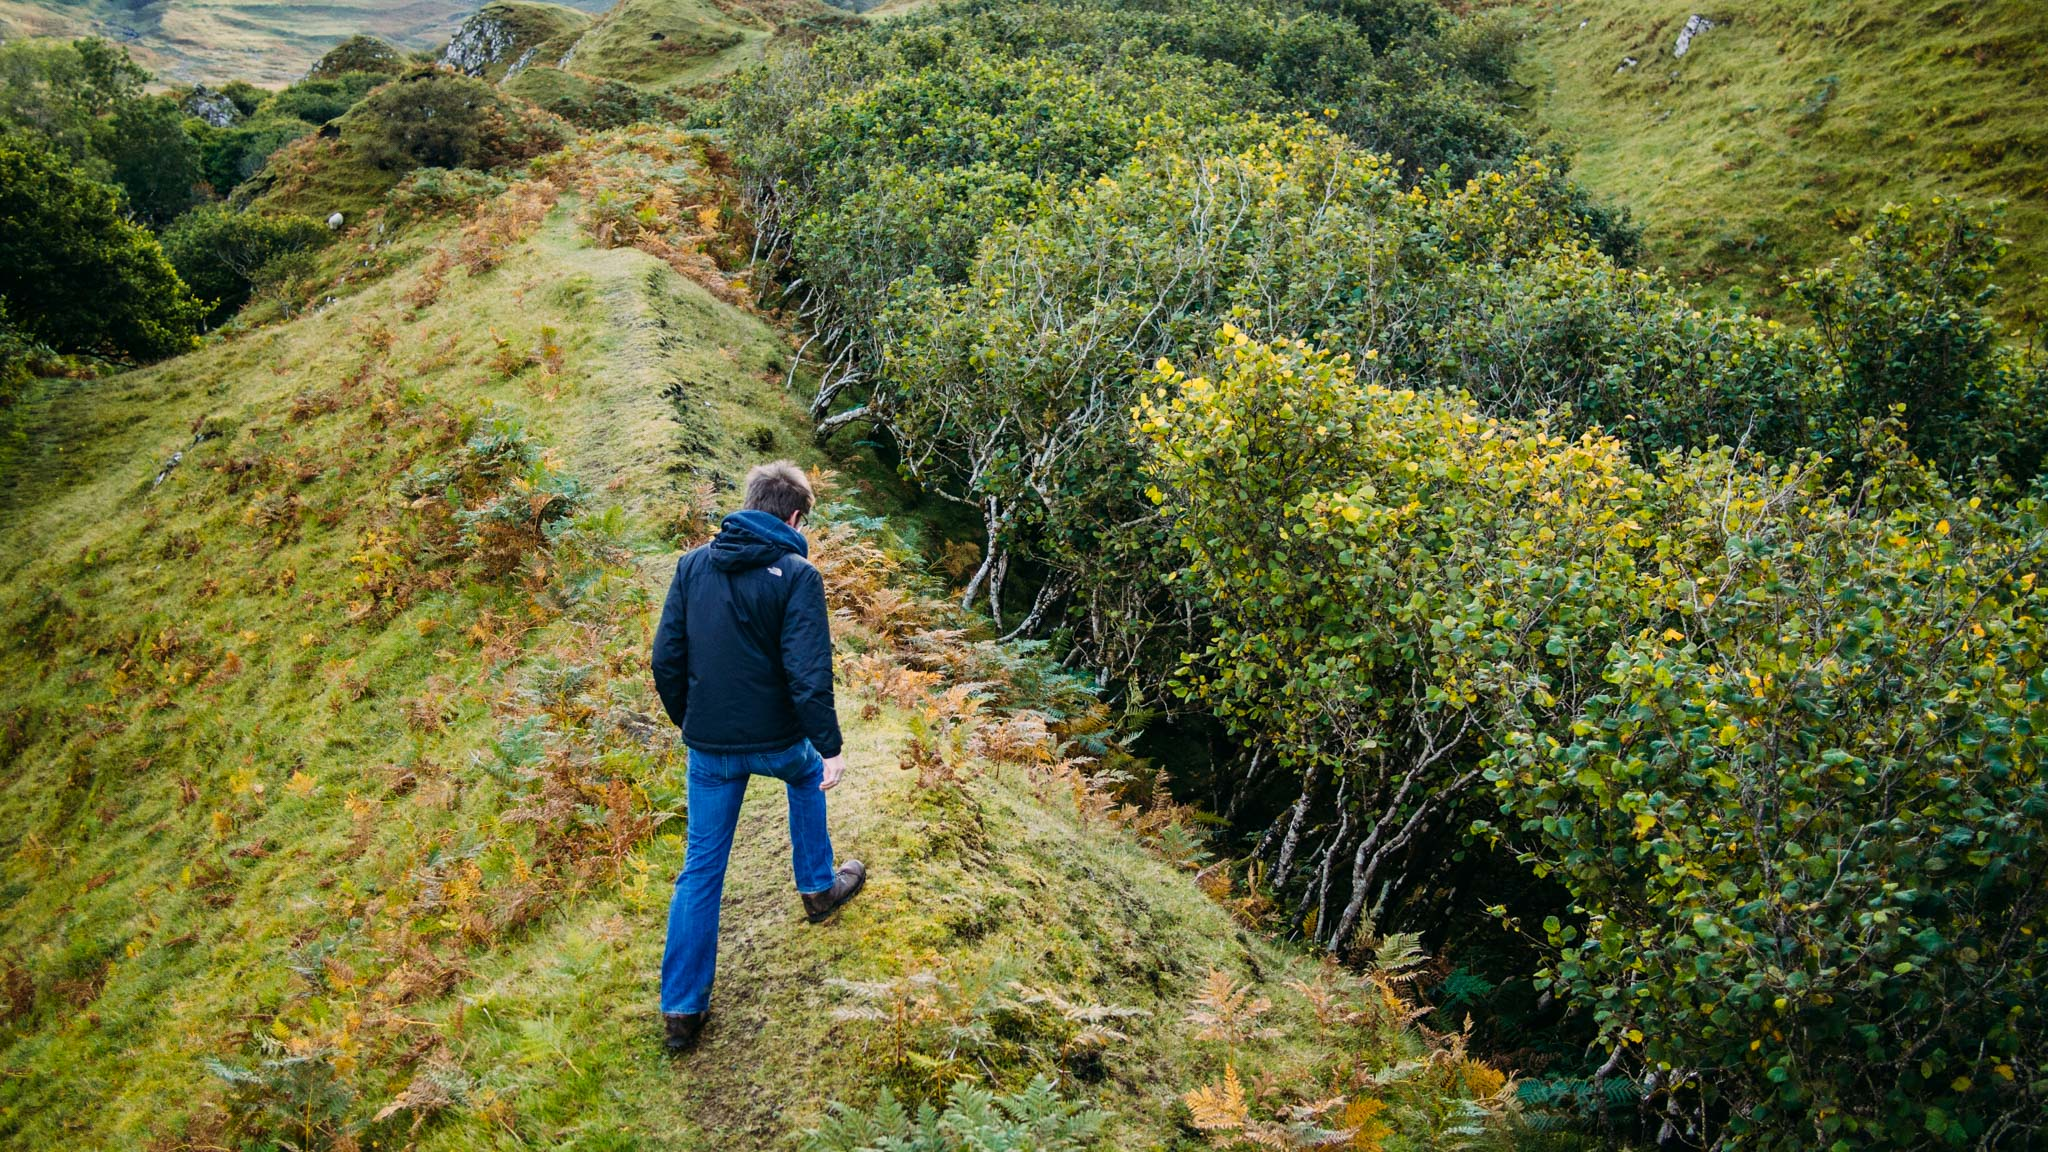 Get off the beaten path | Travelling off the beaten path